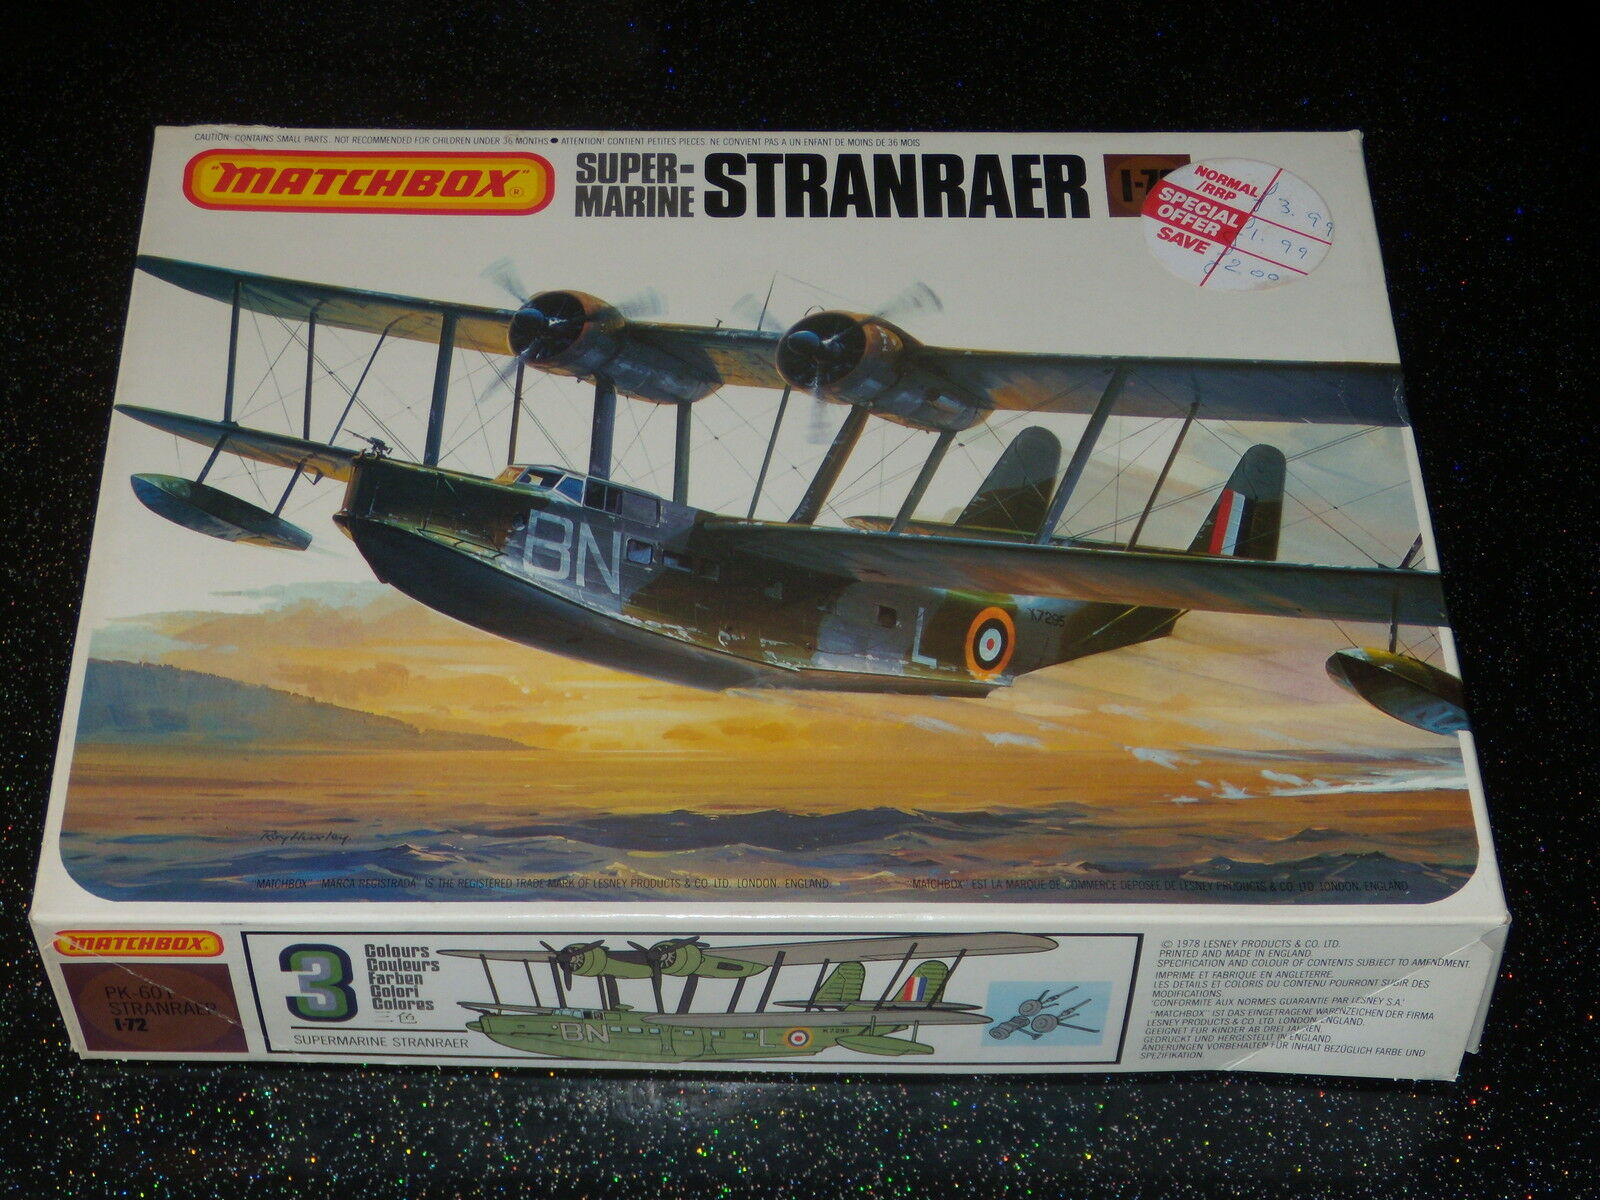 MODEL SUPERMARINE STRANRAER - MATCHBOX - PK- 601 - 1 72 - MODEL KIT